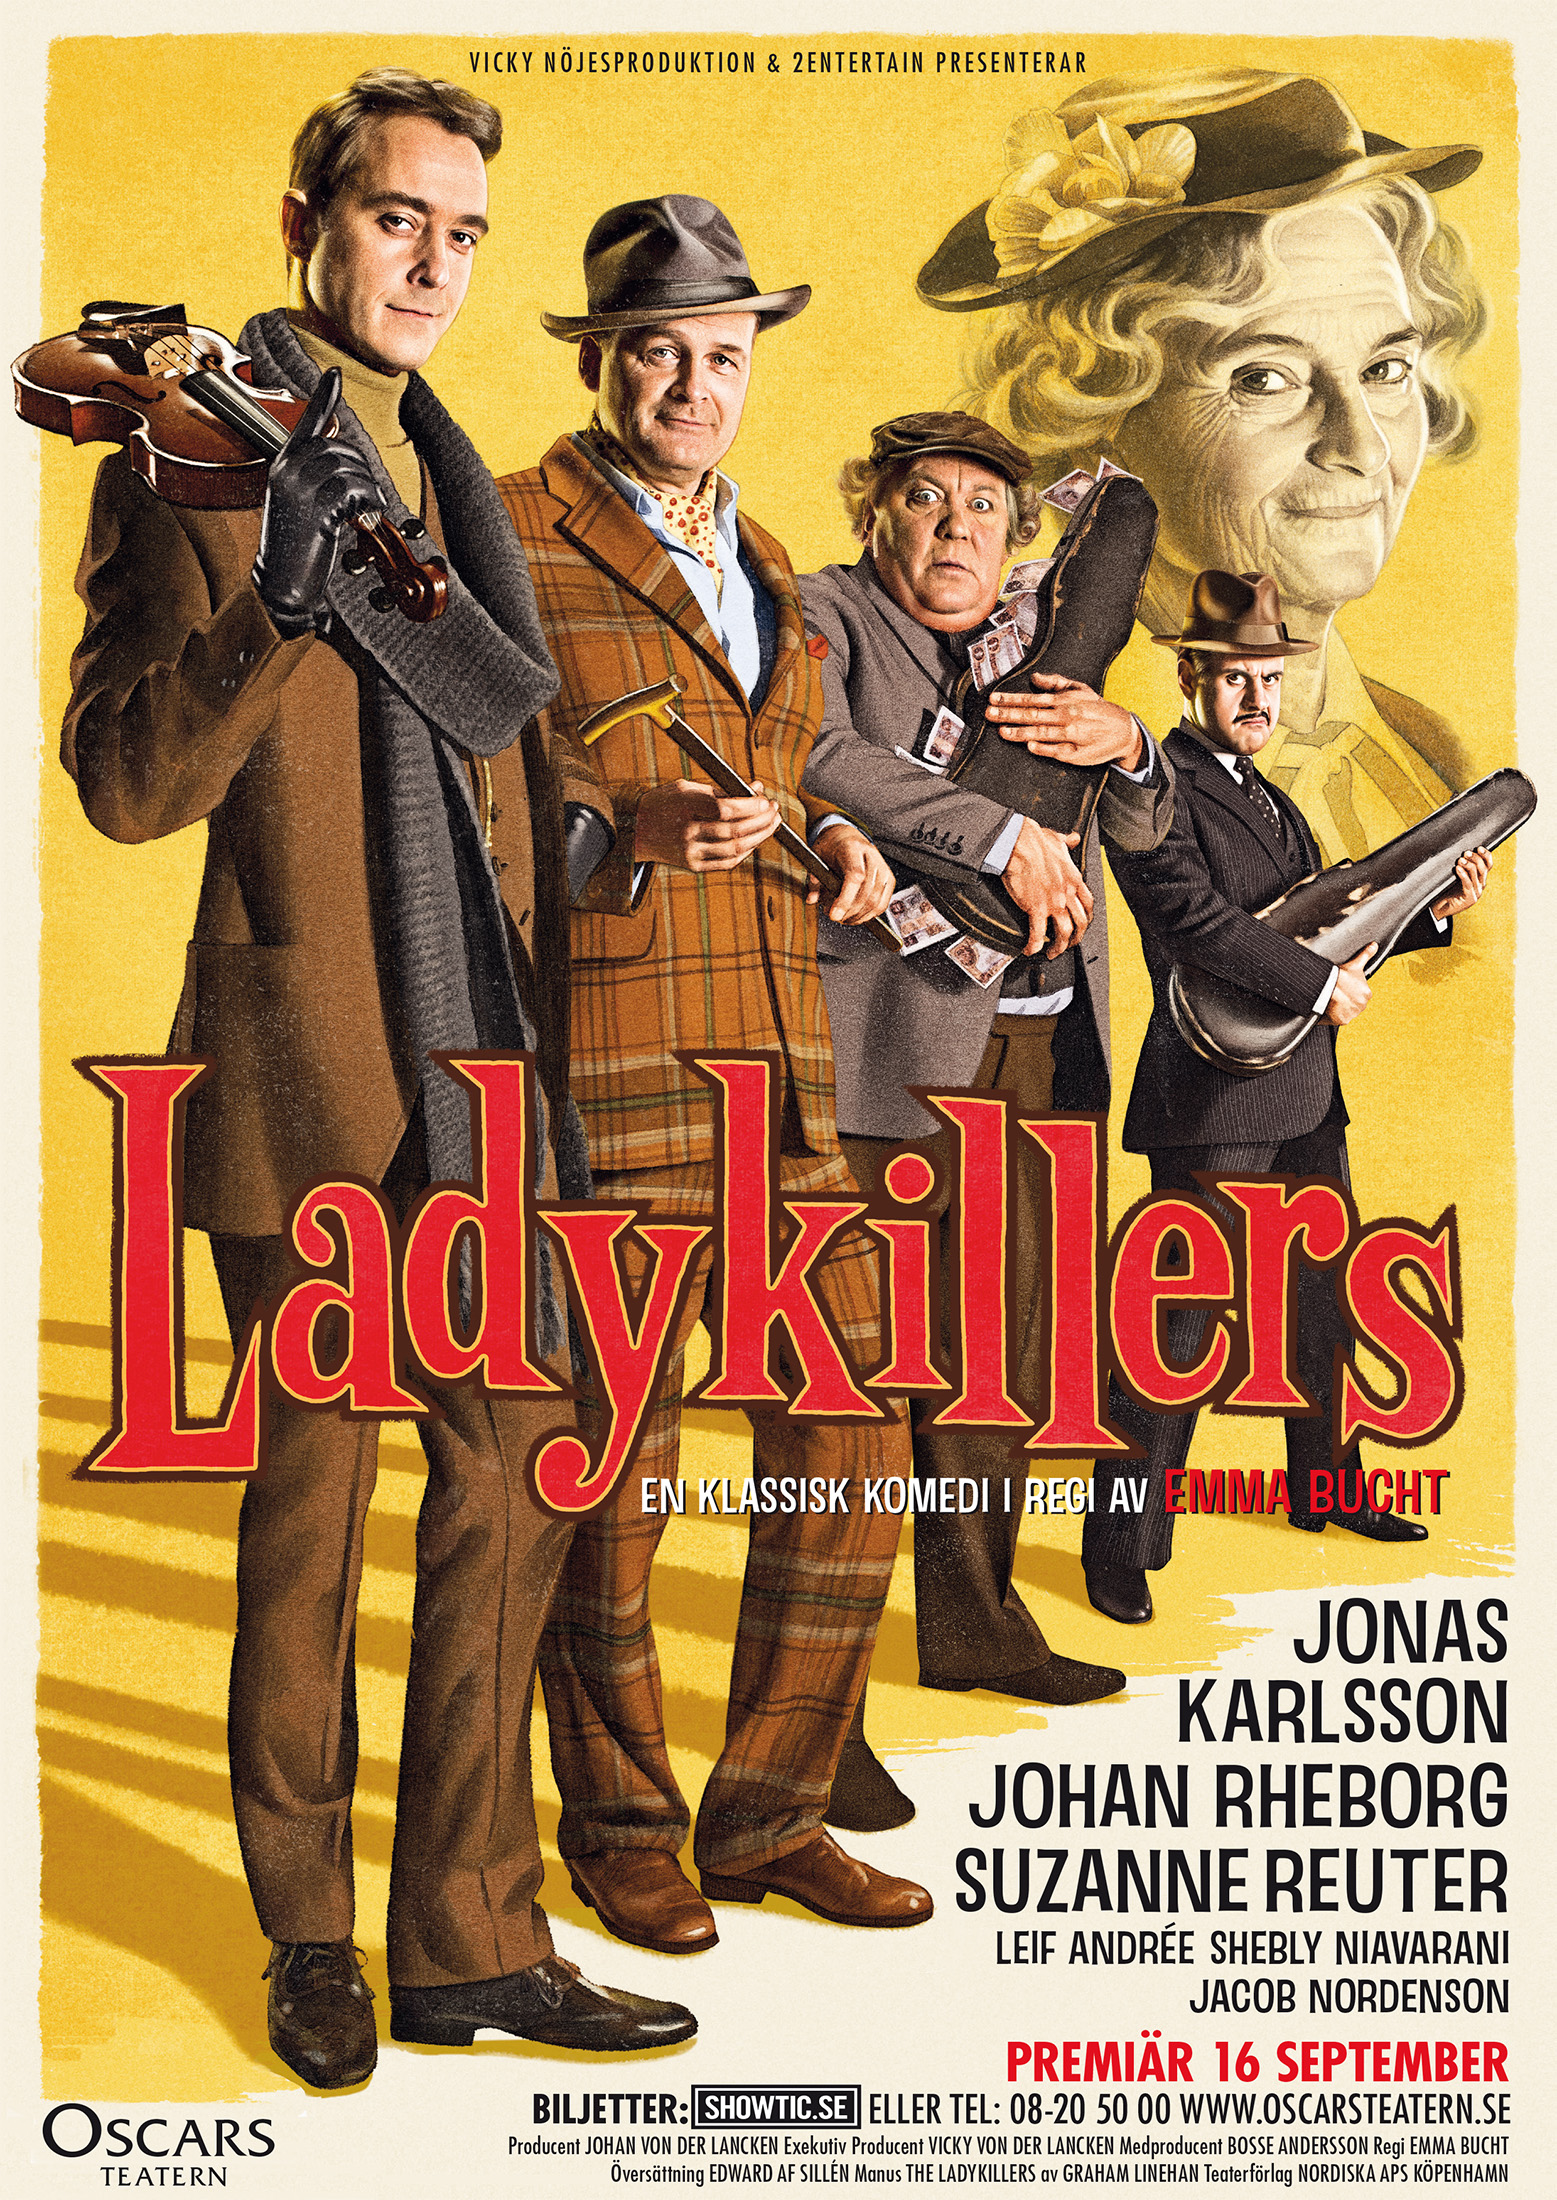 Ladykillers theatrical poster